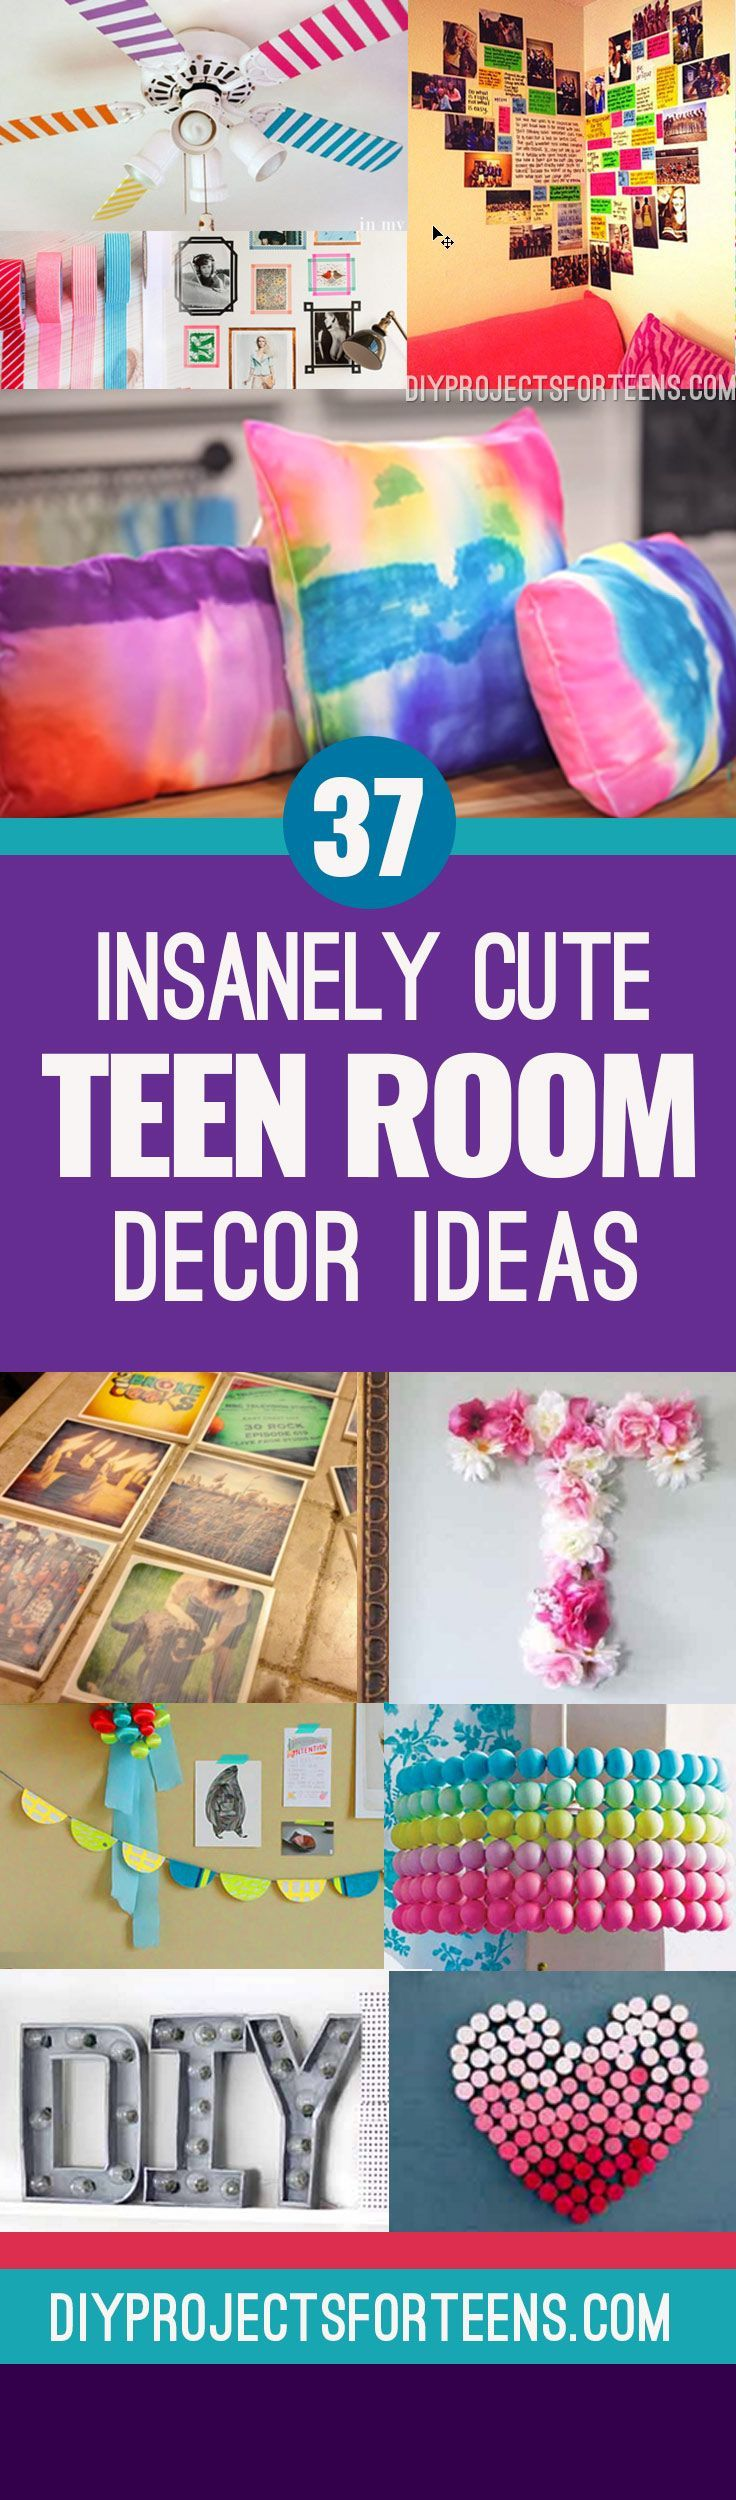 cute diy room decor ideas for teens best diy room decor ideas from